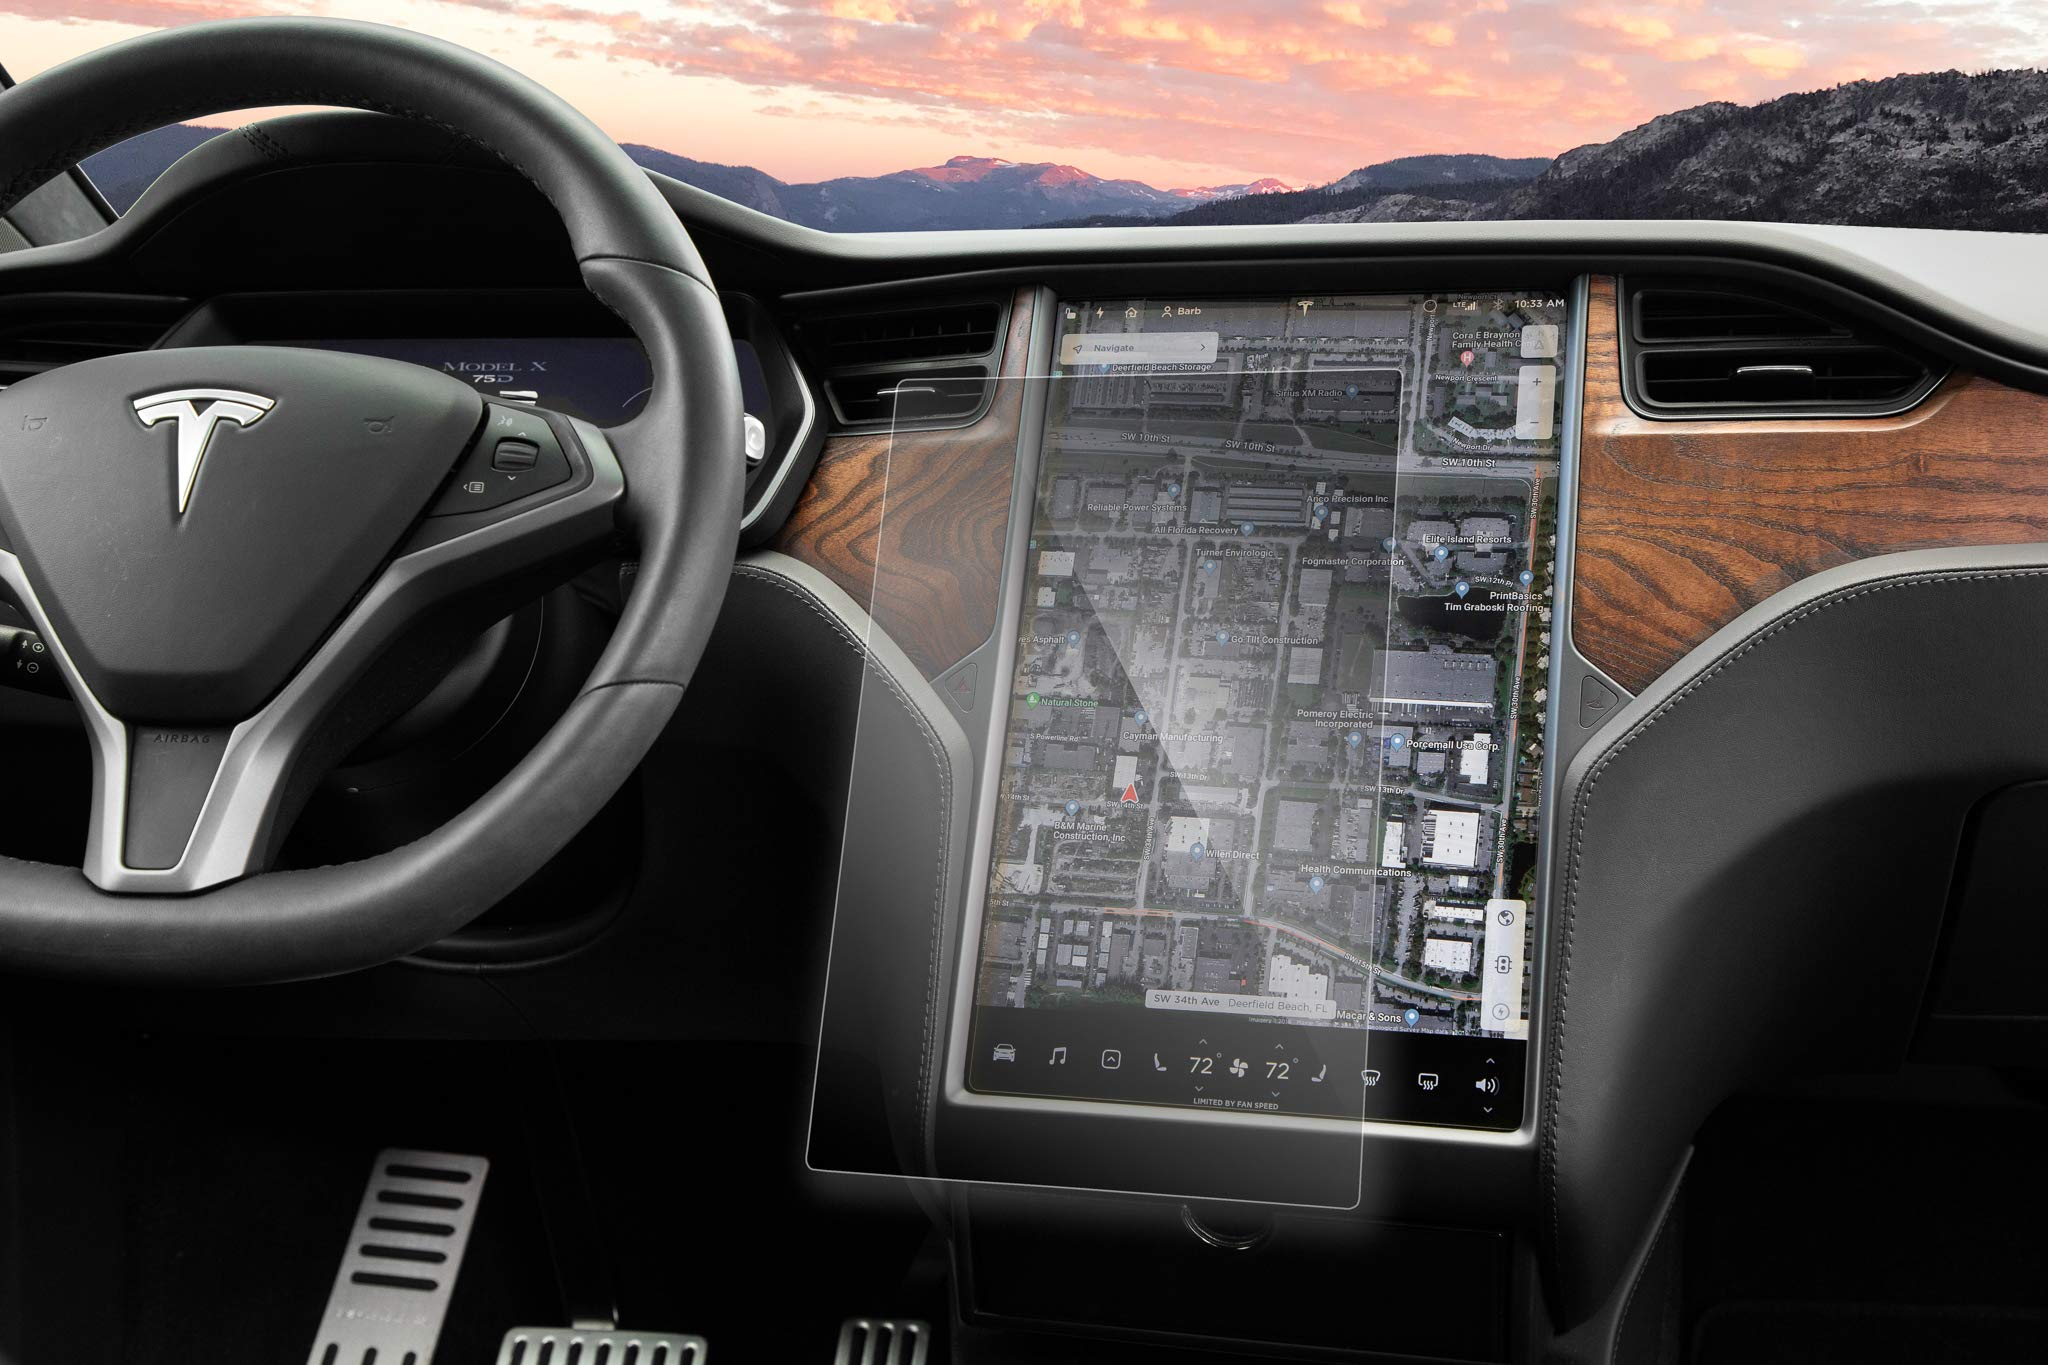 EVANNEX Tempered Glass Screen Protectors for Tesla Owners - MX by EVANNEX